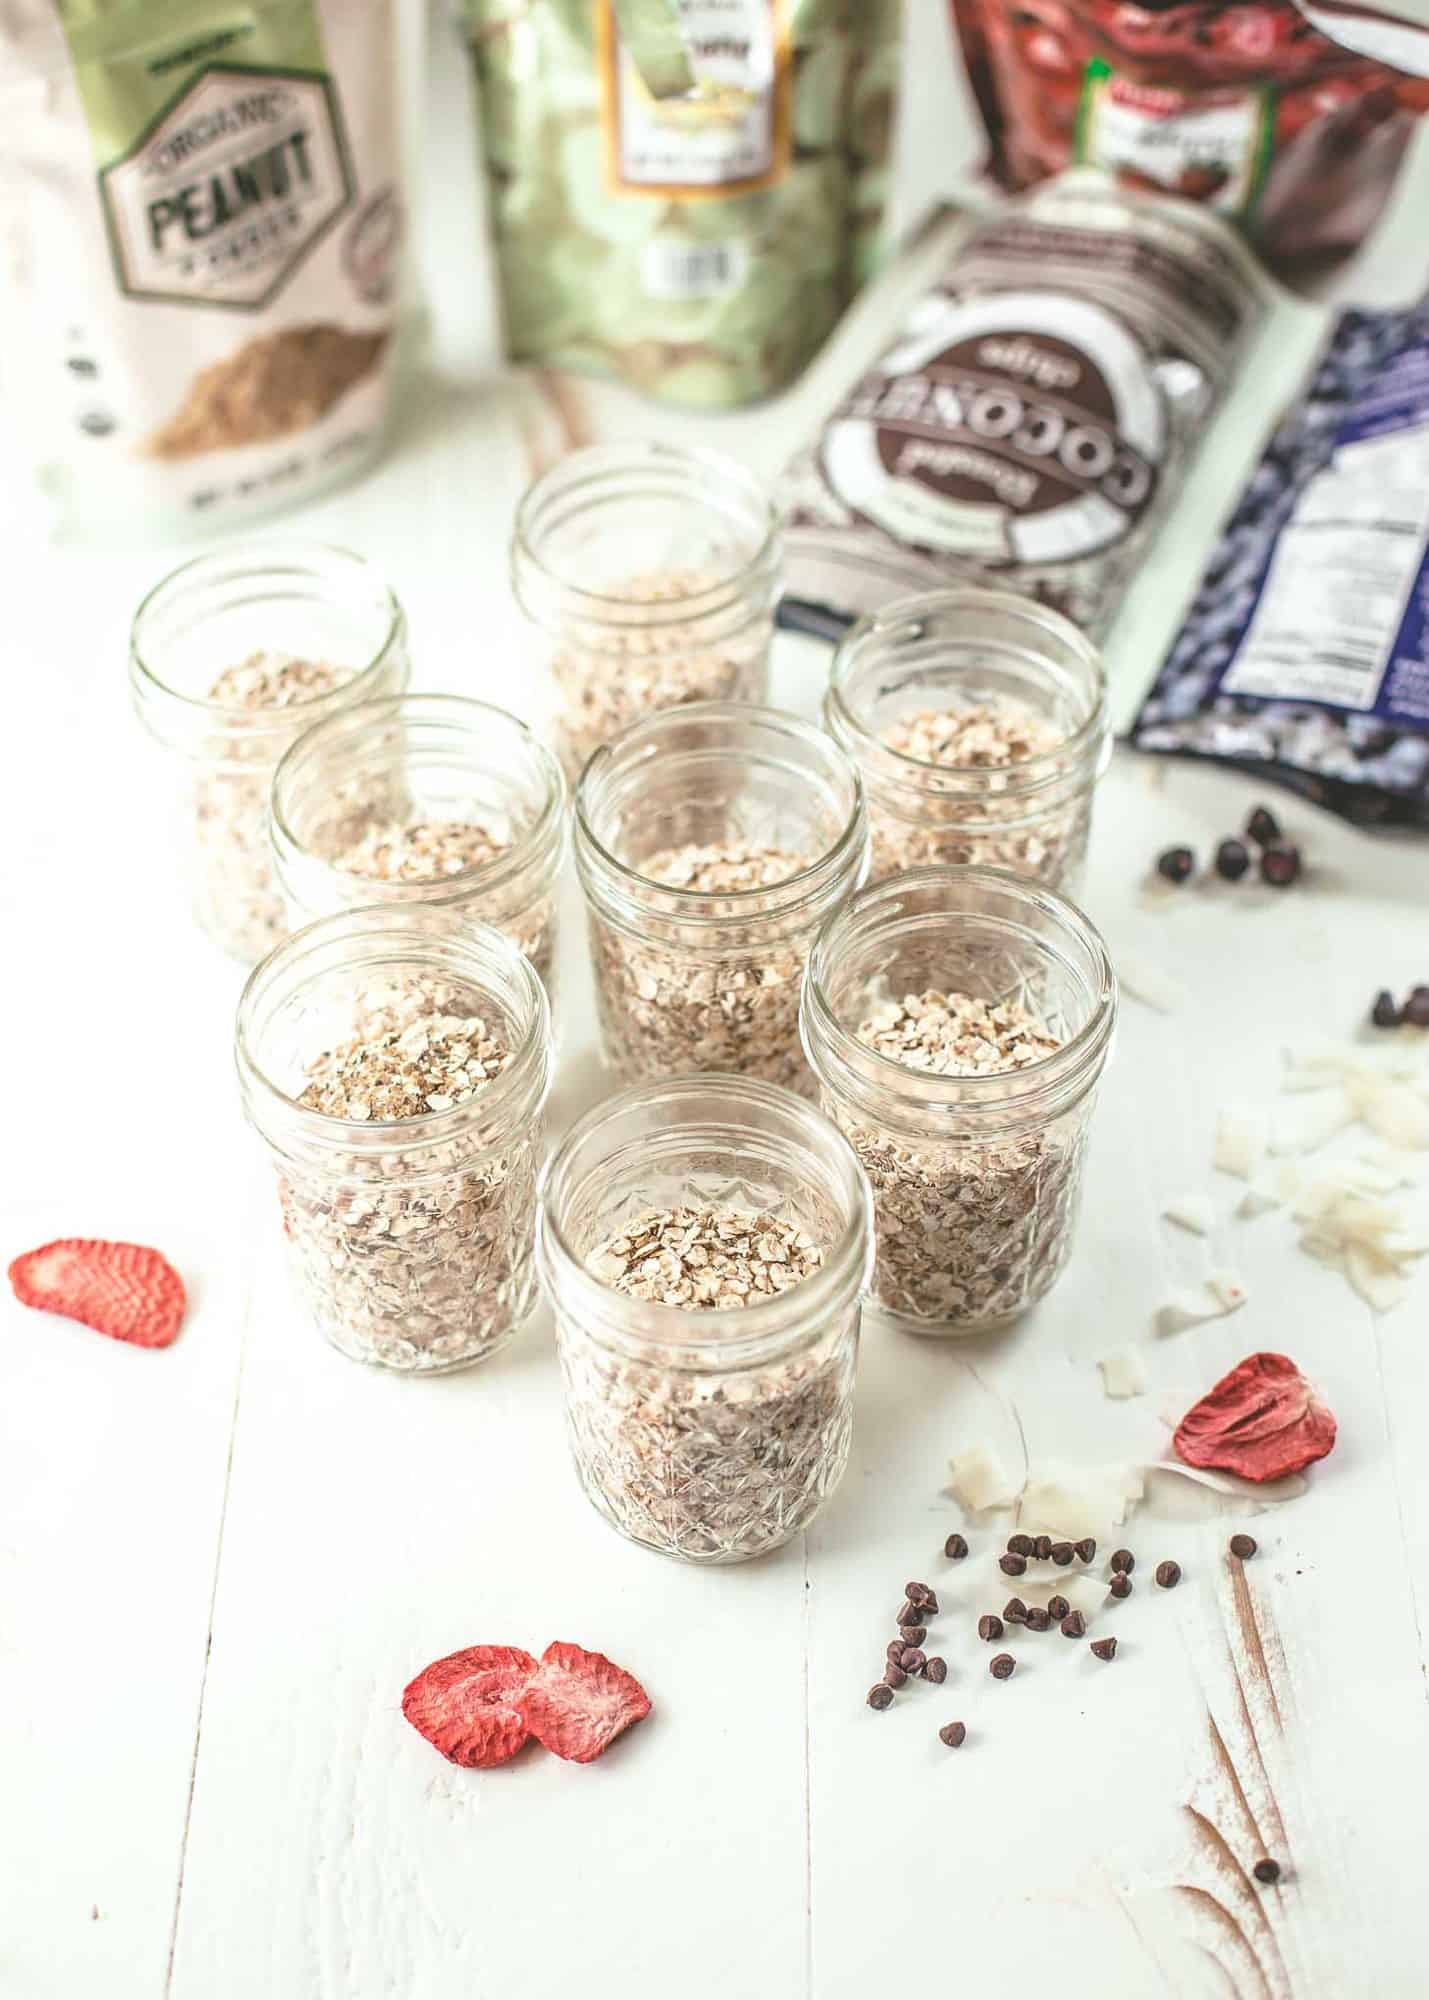 mason jars of homemade oatmeal on a white table